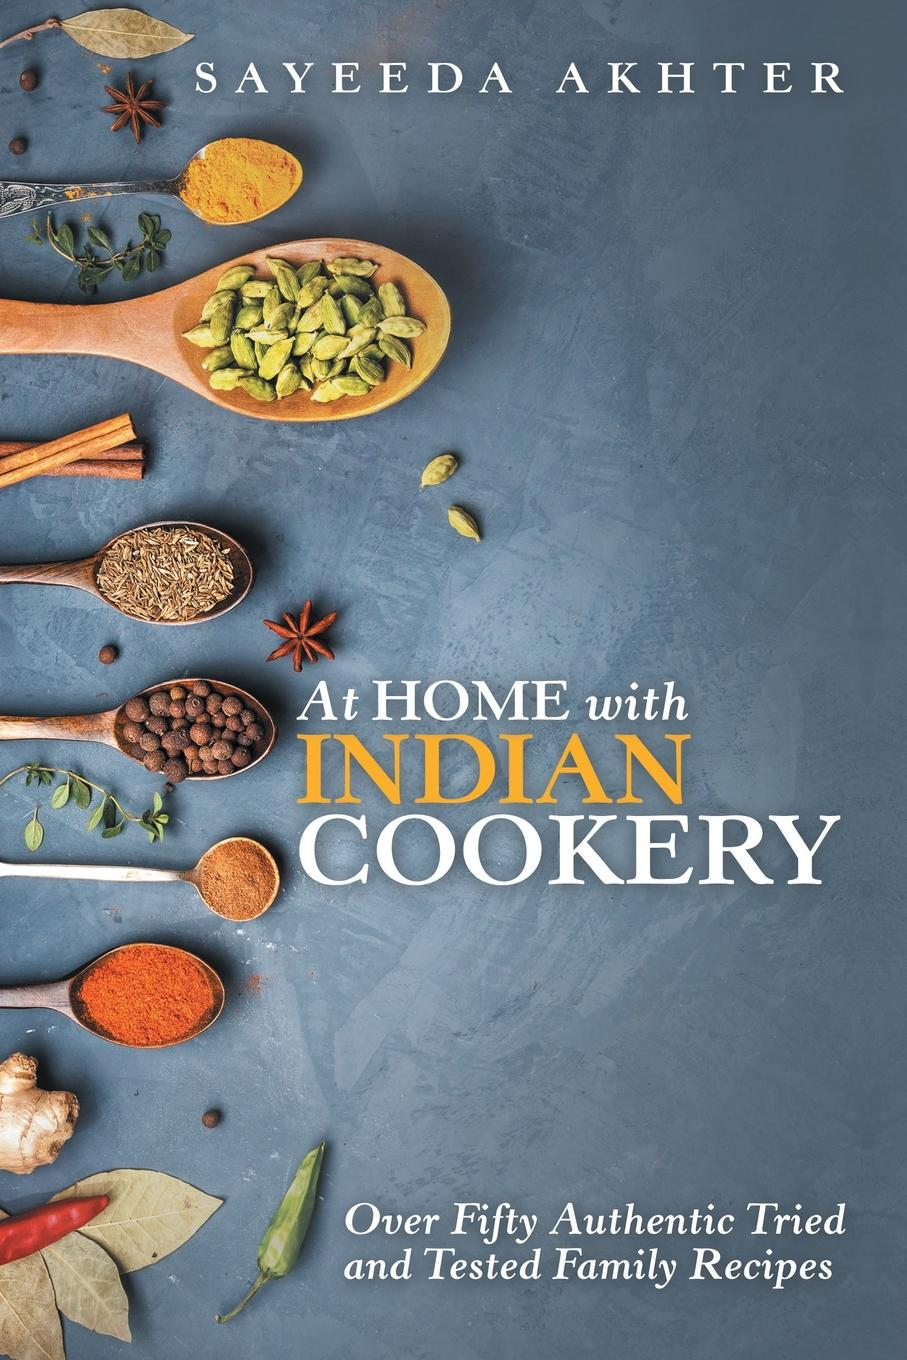 Sayeeda Akhter At Home with Indian Cookery. Over Fifty Authentic Tried and Tested Family Recipes book of bread recipes to make at home